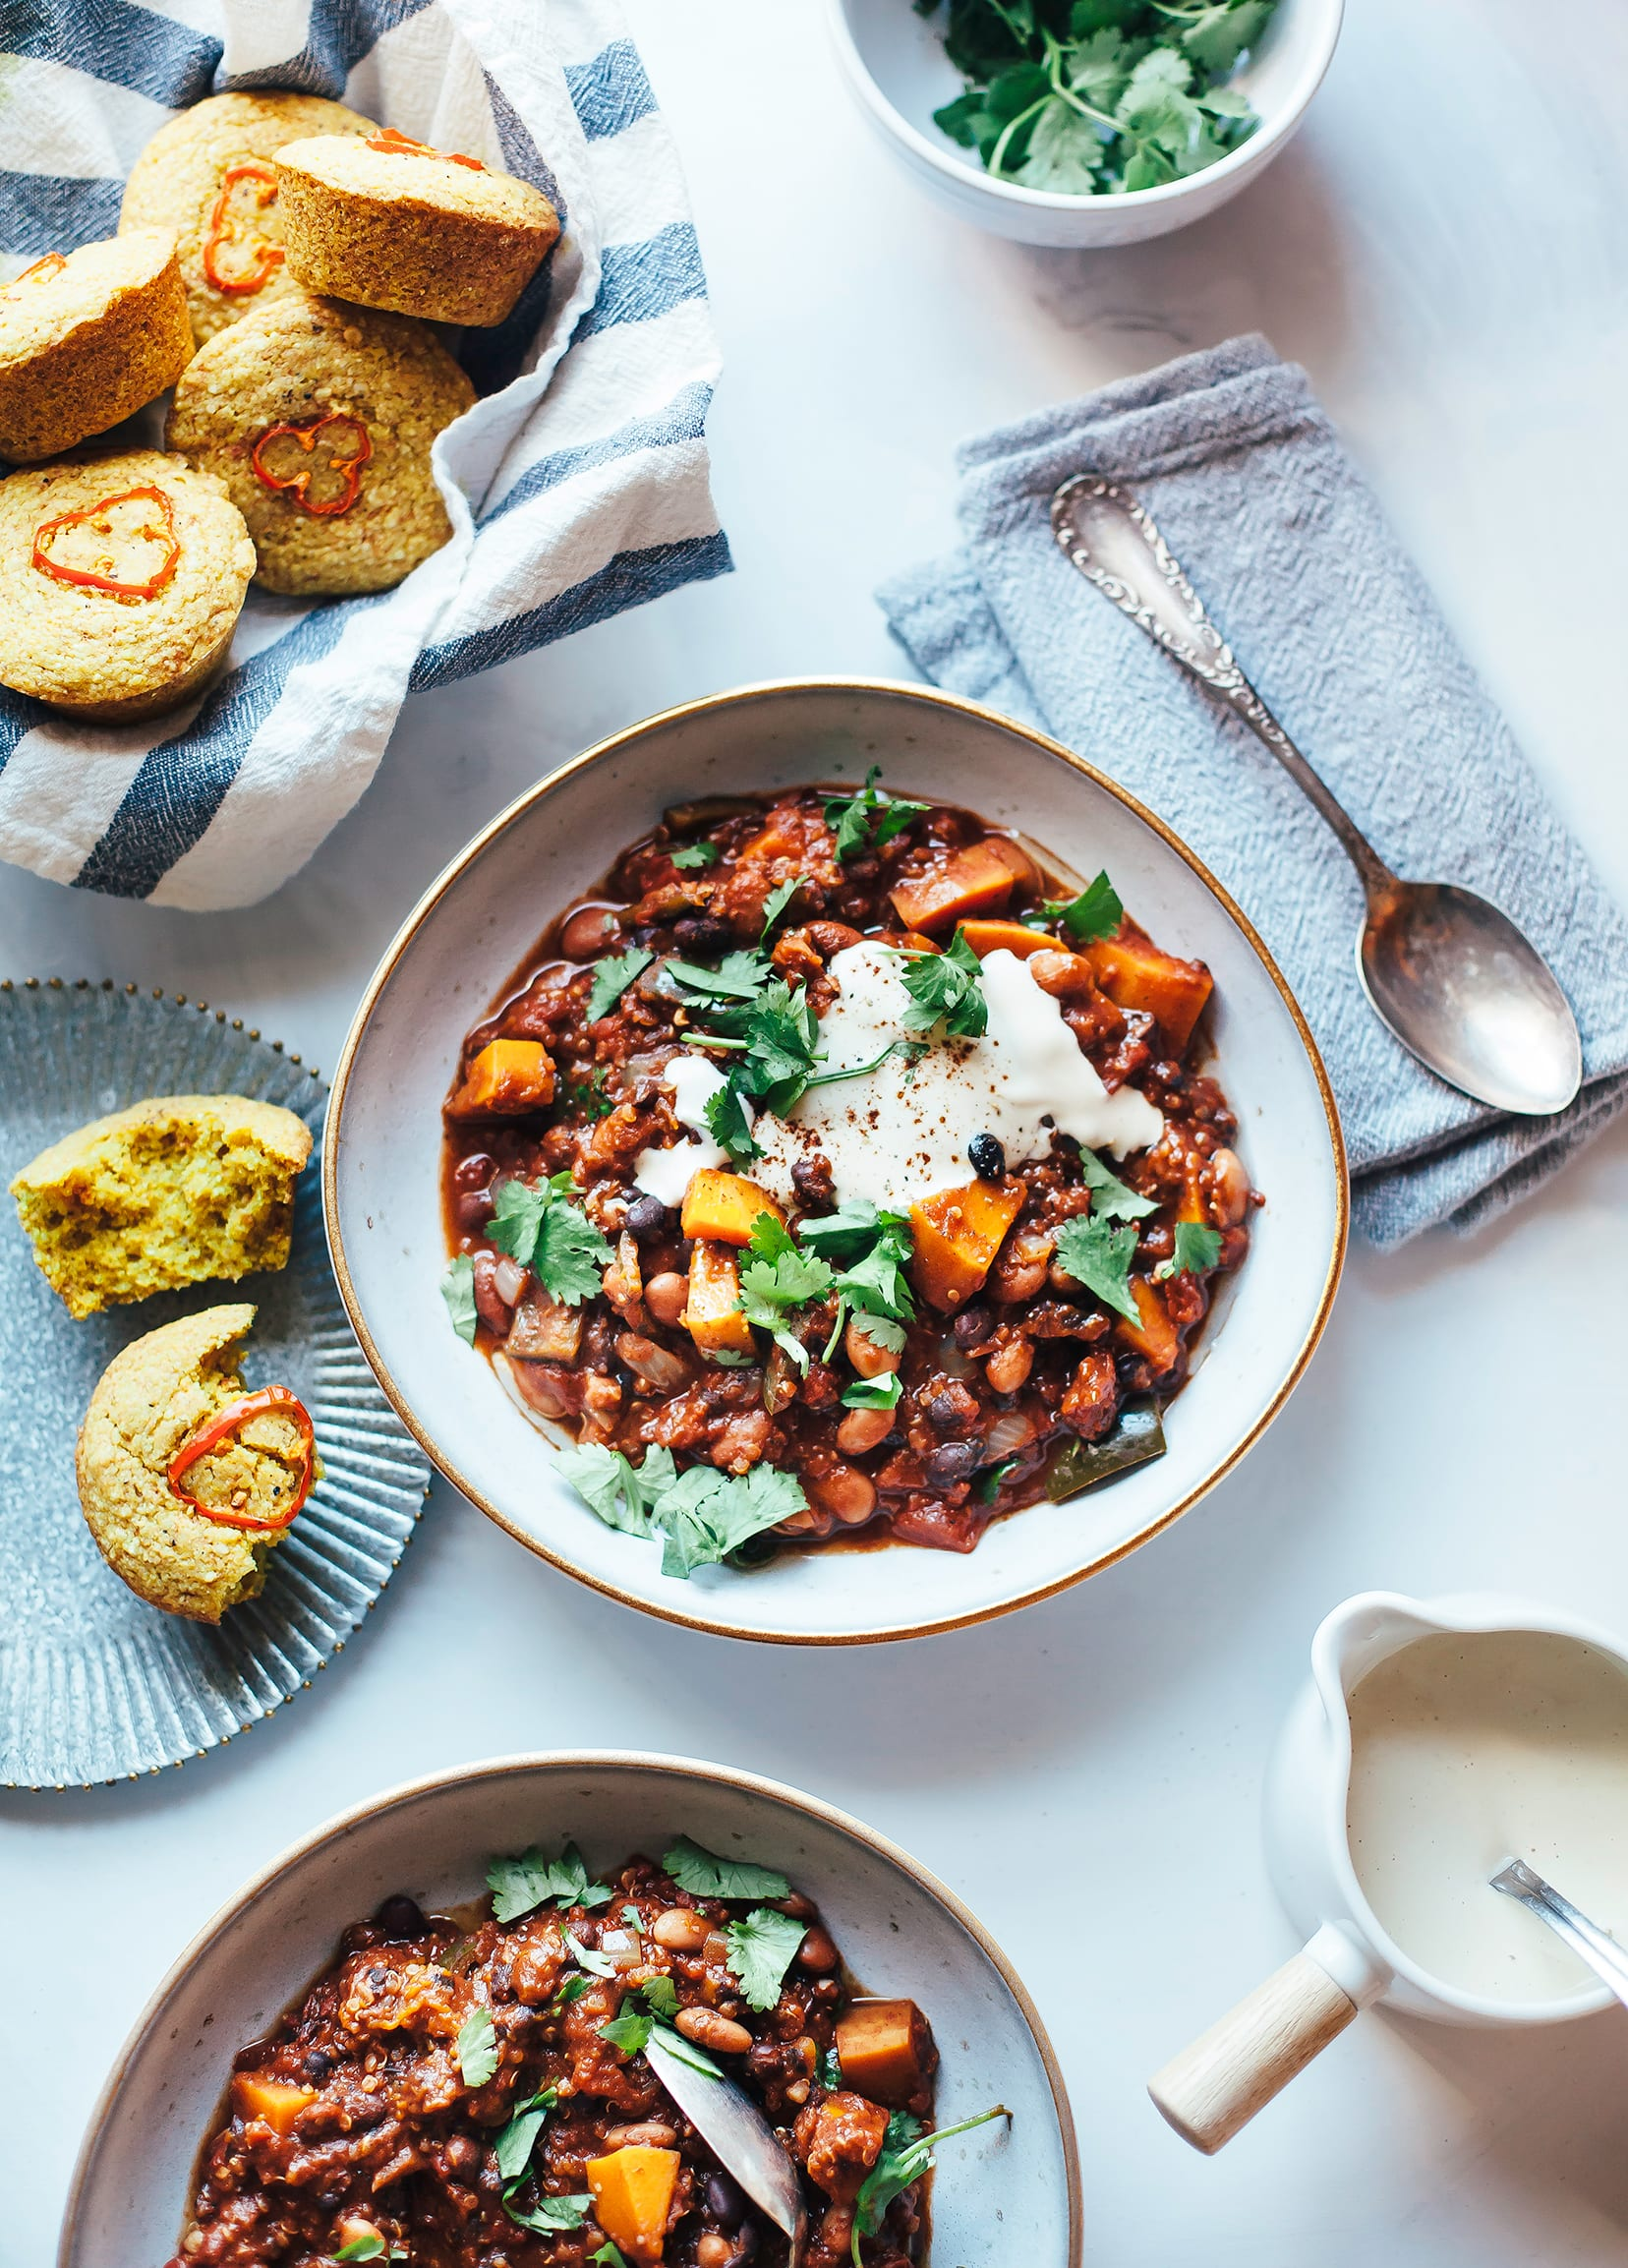 An overhead shot of SMOKY SQUASH CHILI WITH QUINOA, PINTO & BLACK BEANS with cornbread muffins on the side.